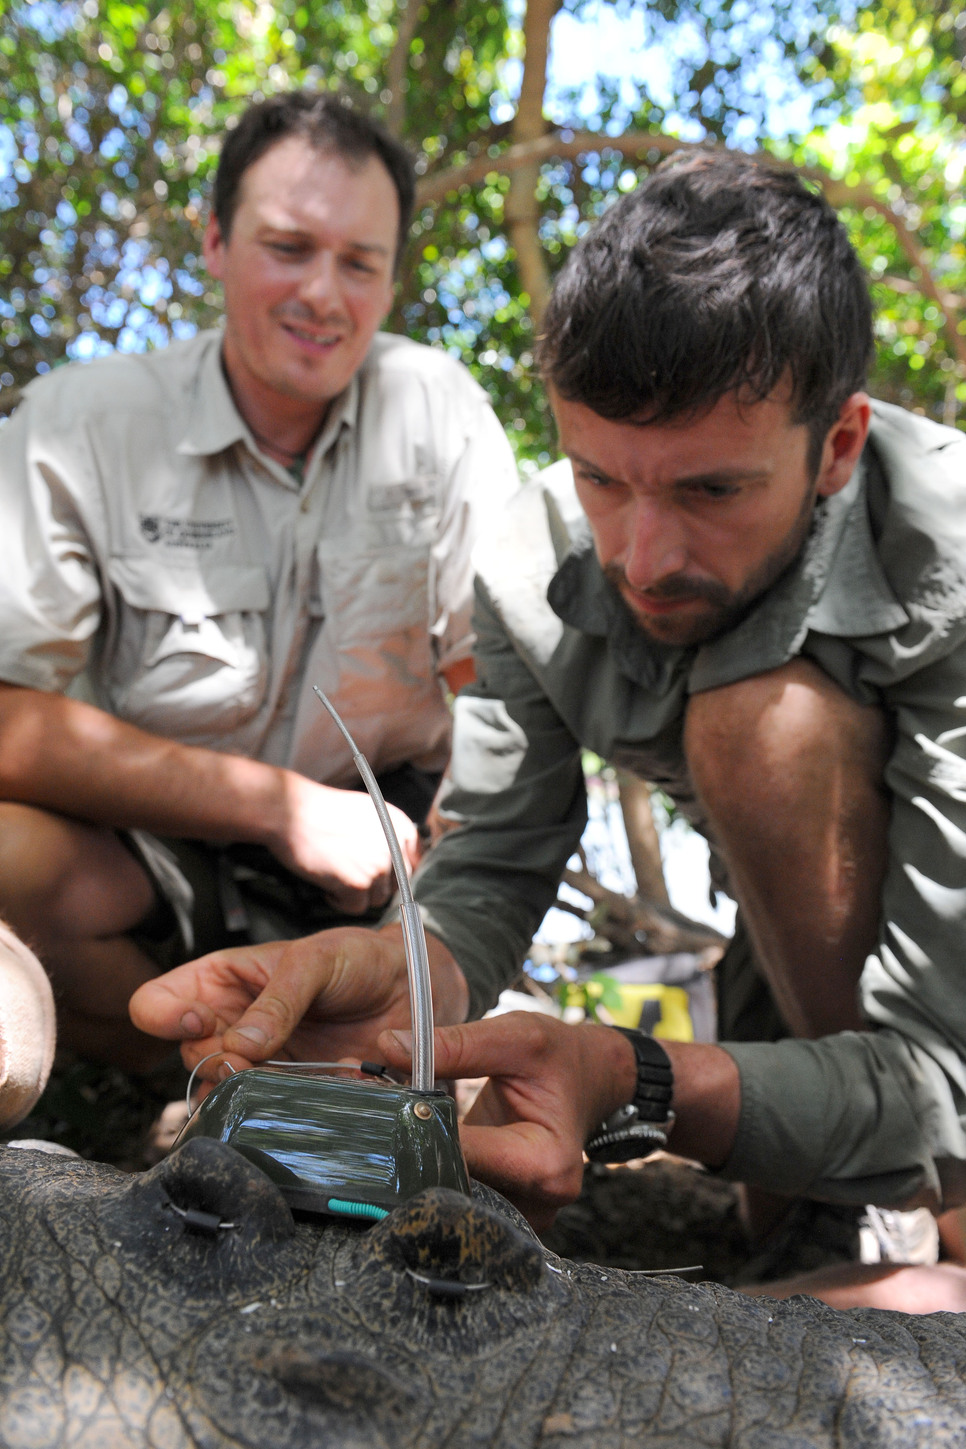 ZoaTrack researchers R. Dwyer (front) and H. Campbell (back) attaching a tracking device to a wild saltwater crocodile. Photo credit: Ben Beaden (Australia Zoo)